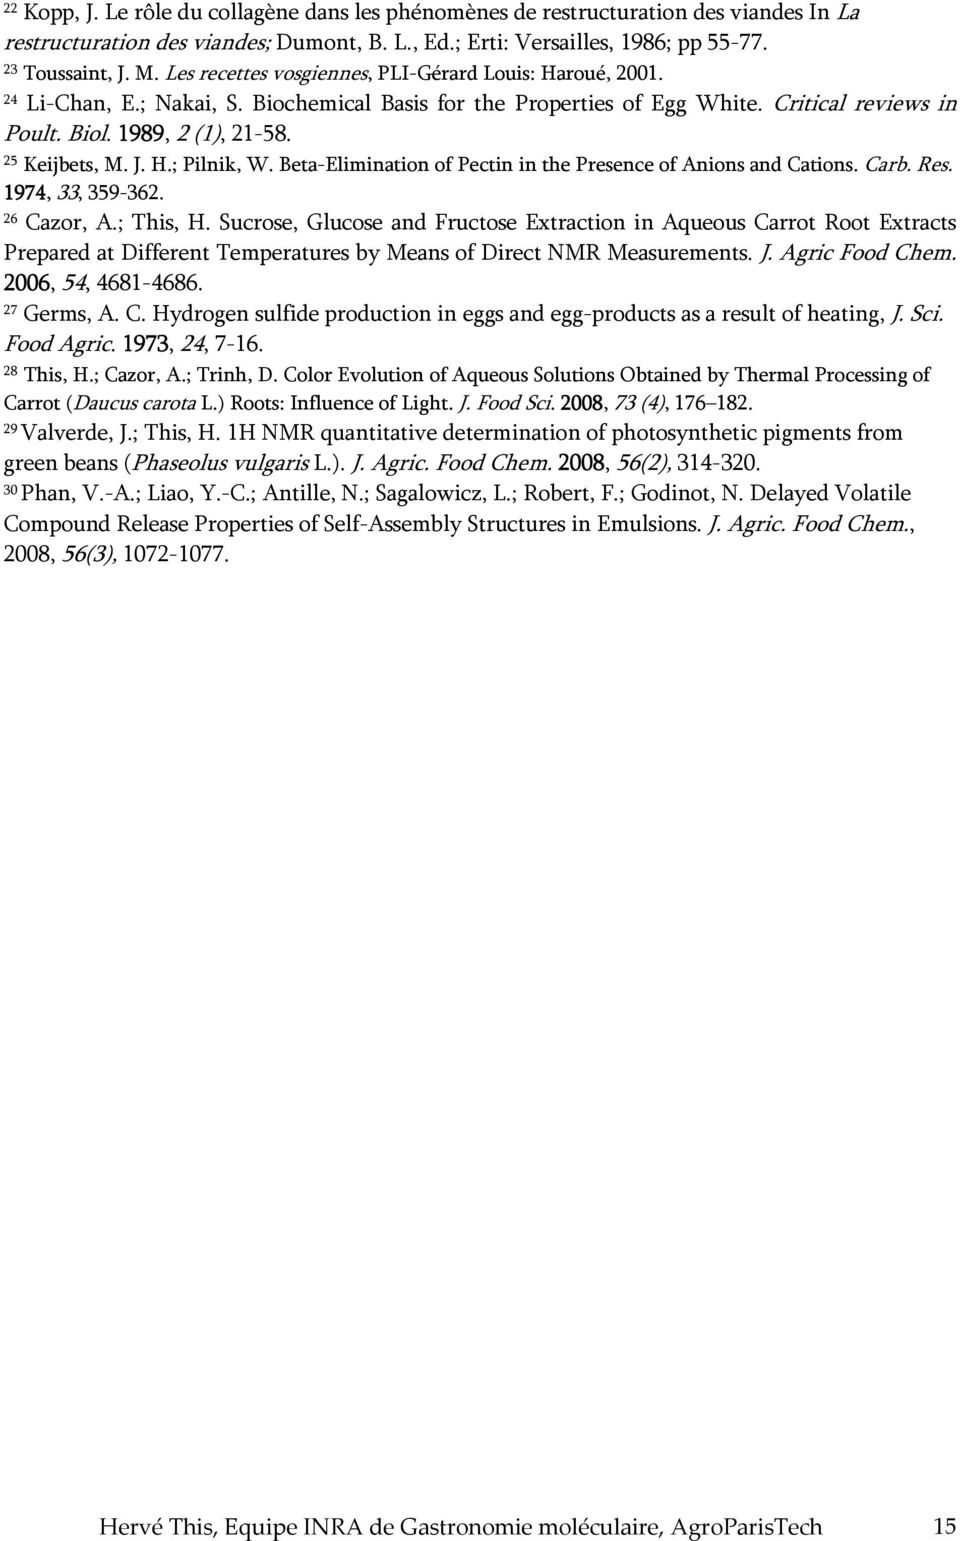 25 Keijbets, M. J..; Pilnik, W. Beta-Elimination of Pectin in the Presence of Anions and Cations. Carb. Res. 1974, 33, 359-362. 26 Cazor, A.; This,.